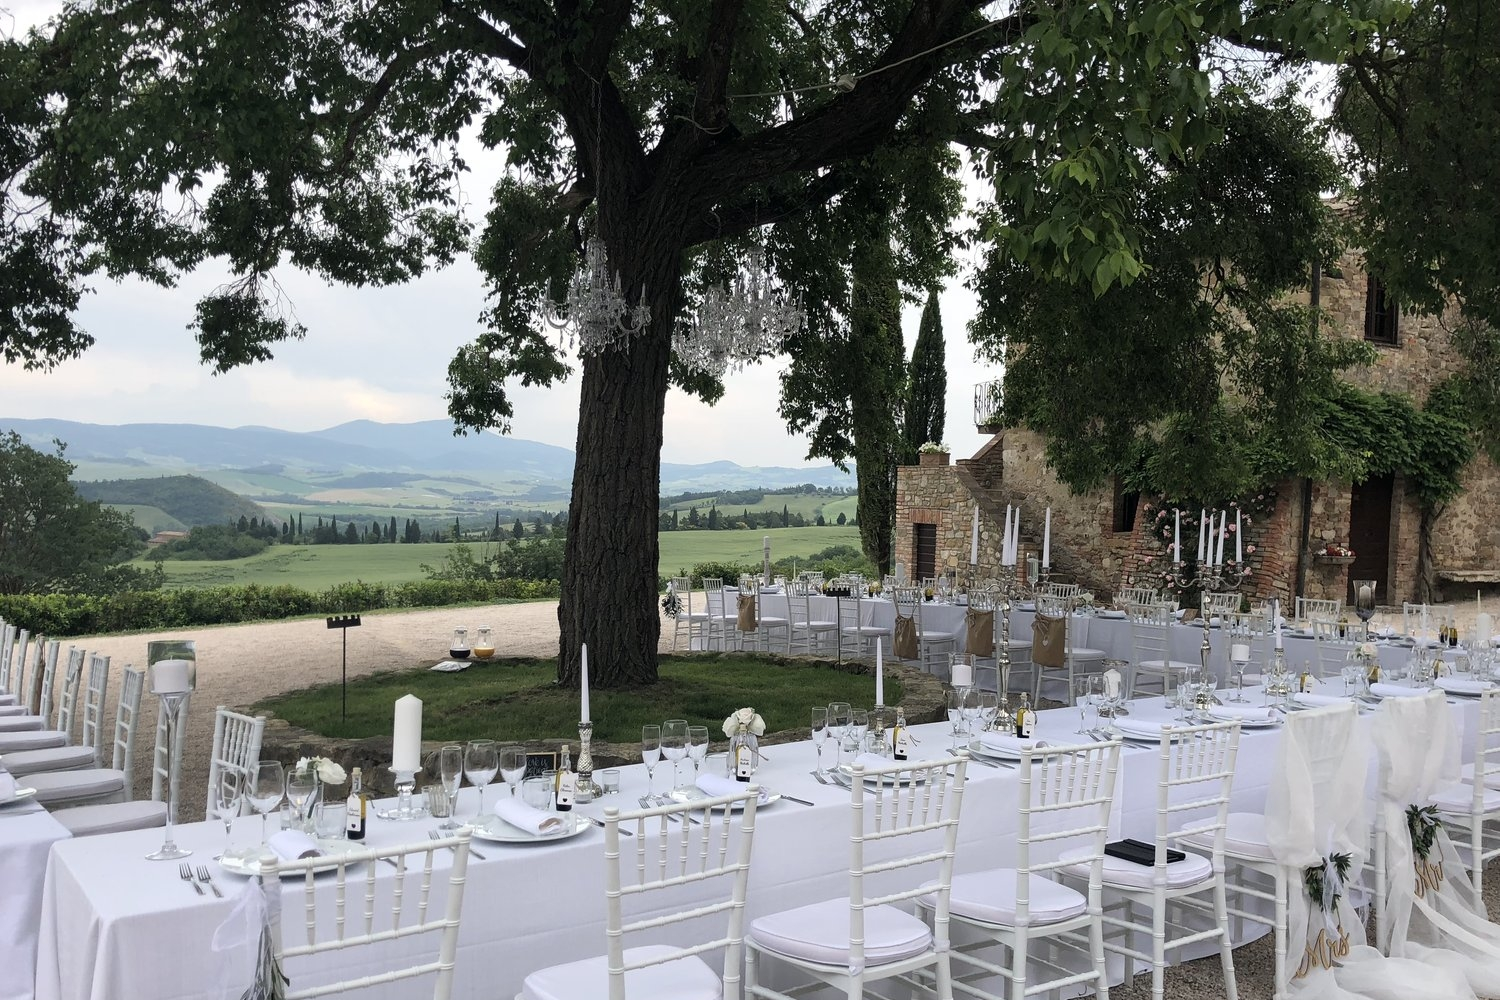 Borgo di Castelvecchio, Siena - A collection of 9 apartments with accommodation onsite for 64 people. Villa Gino has beautiful countryside views which make the perfect wedding backdrop.Read More...